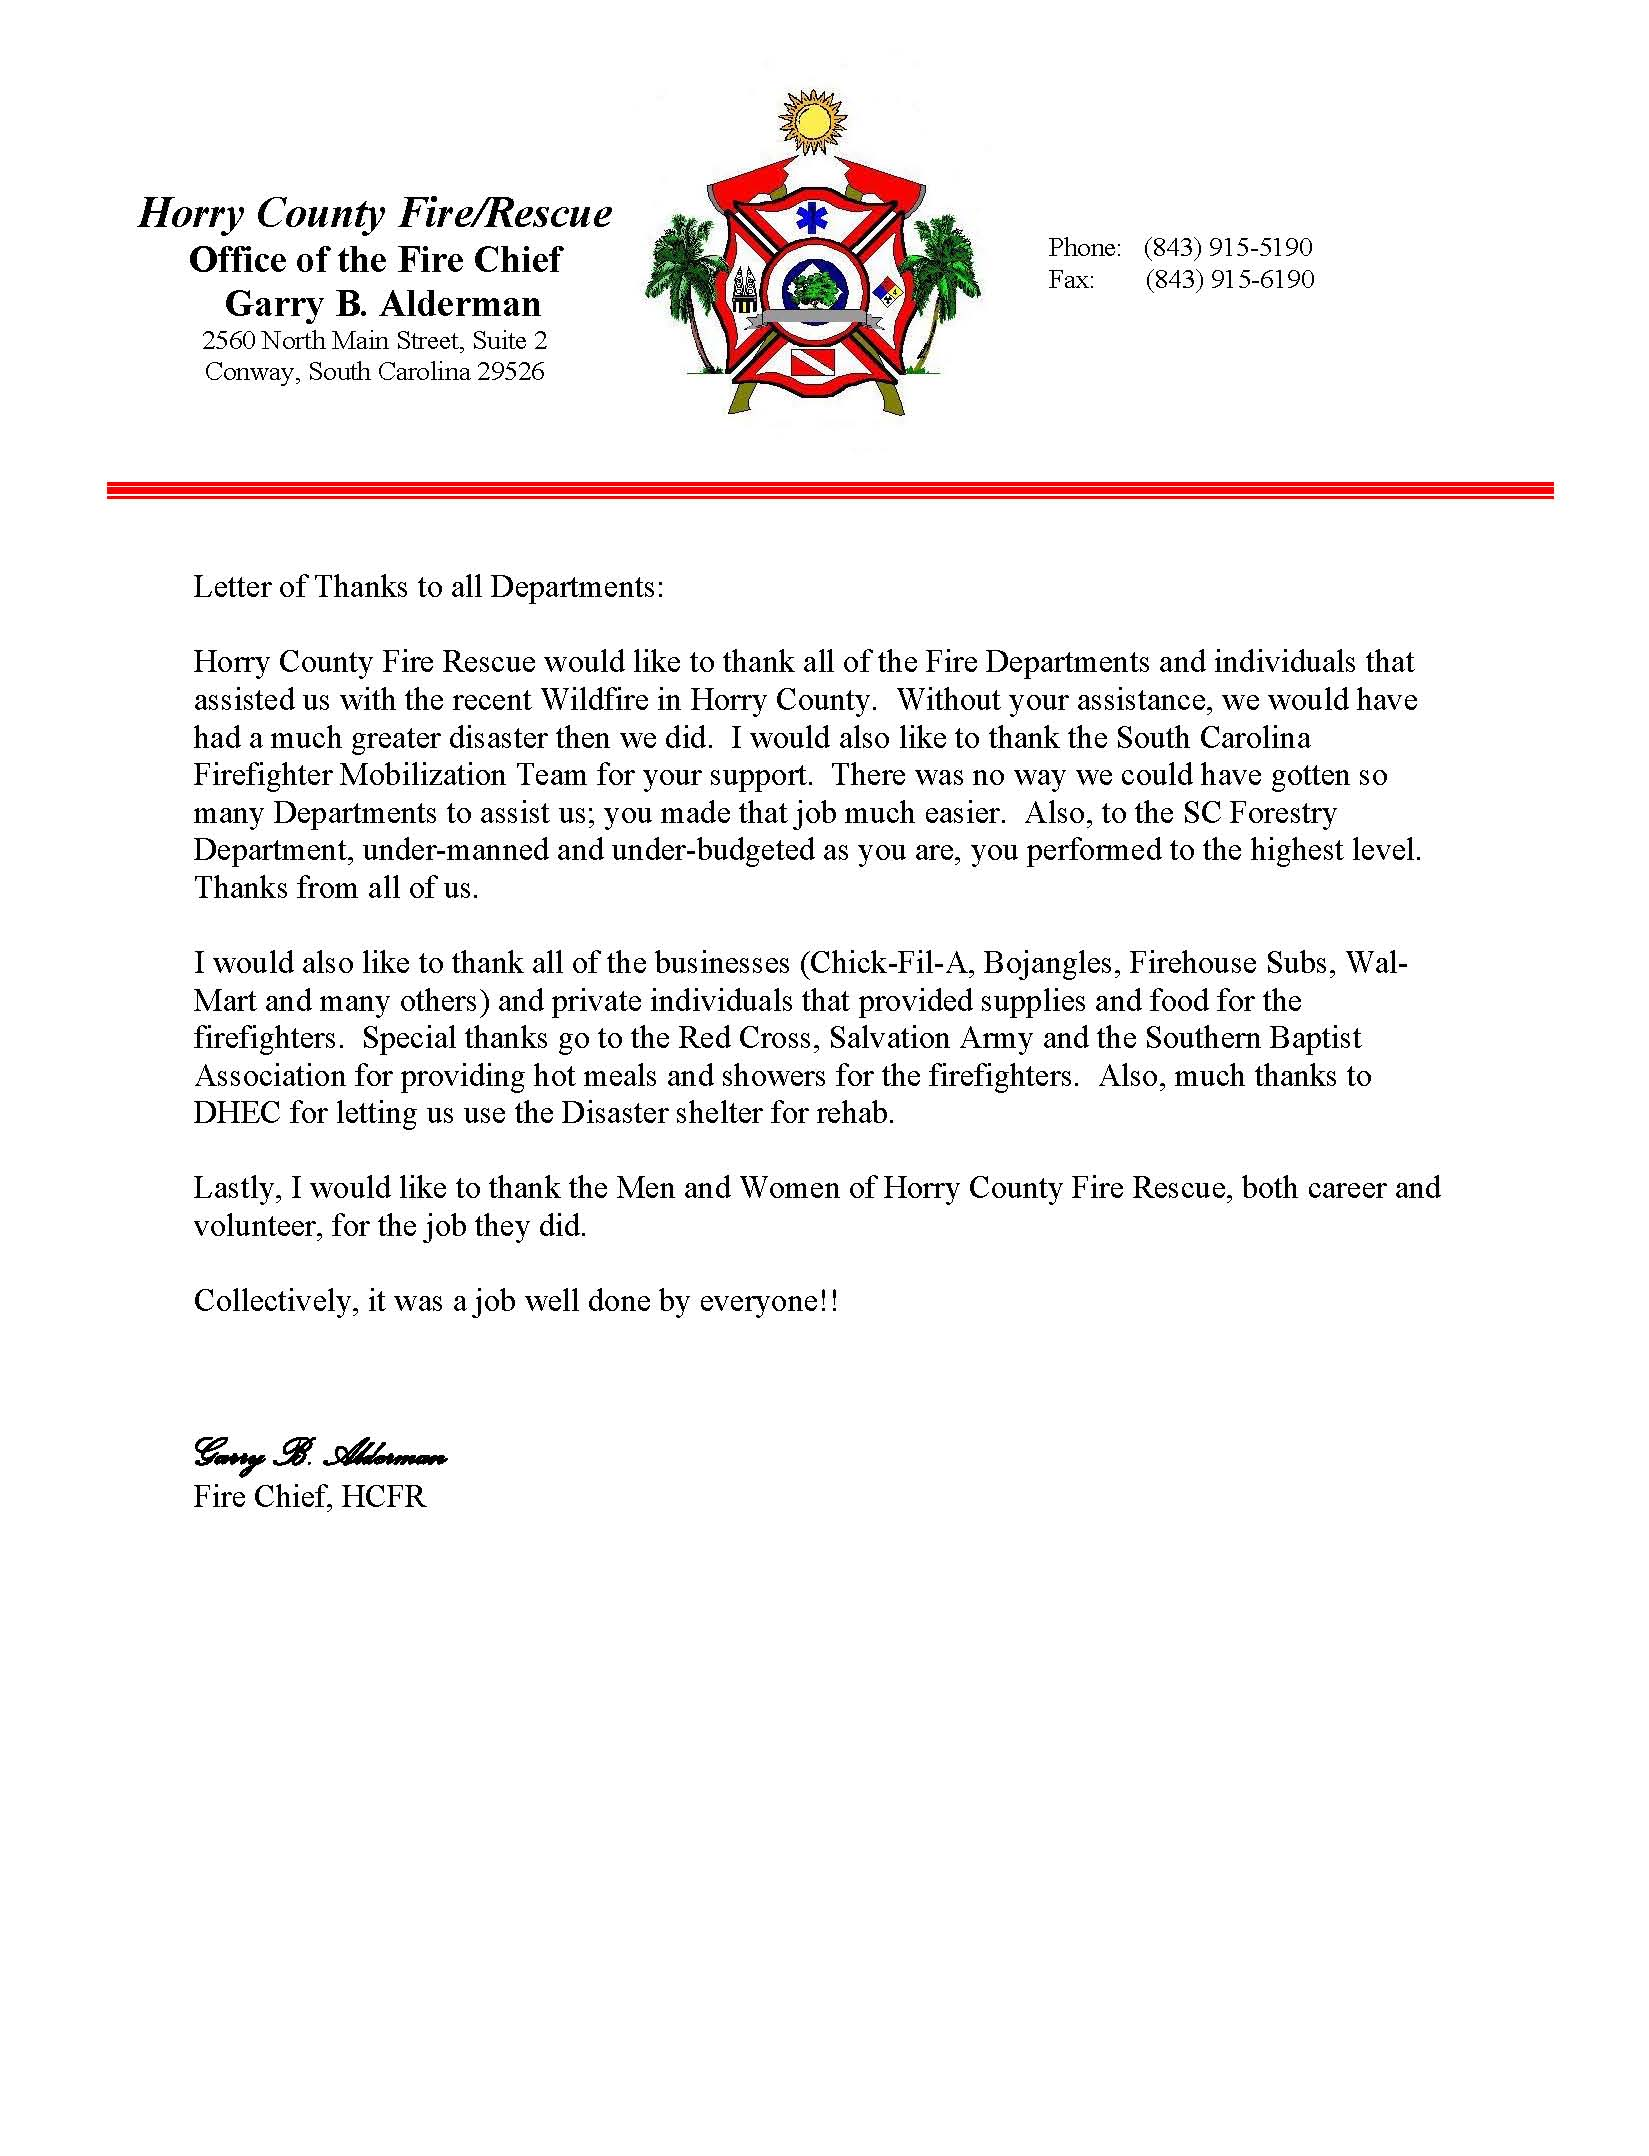 Sample Letter Of Appreciation For A Job Well Done from www.colletonfire.com